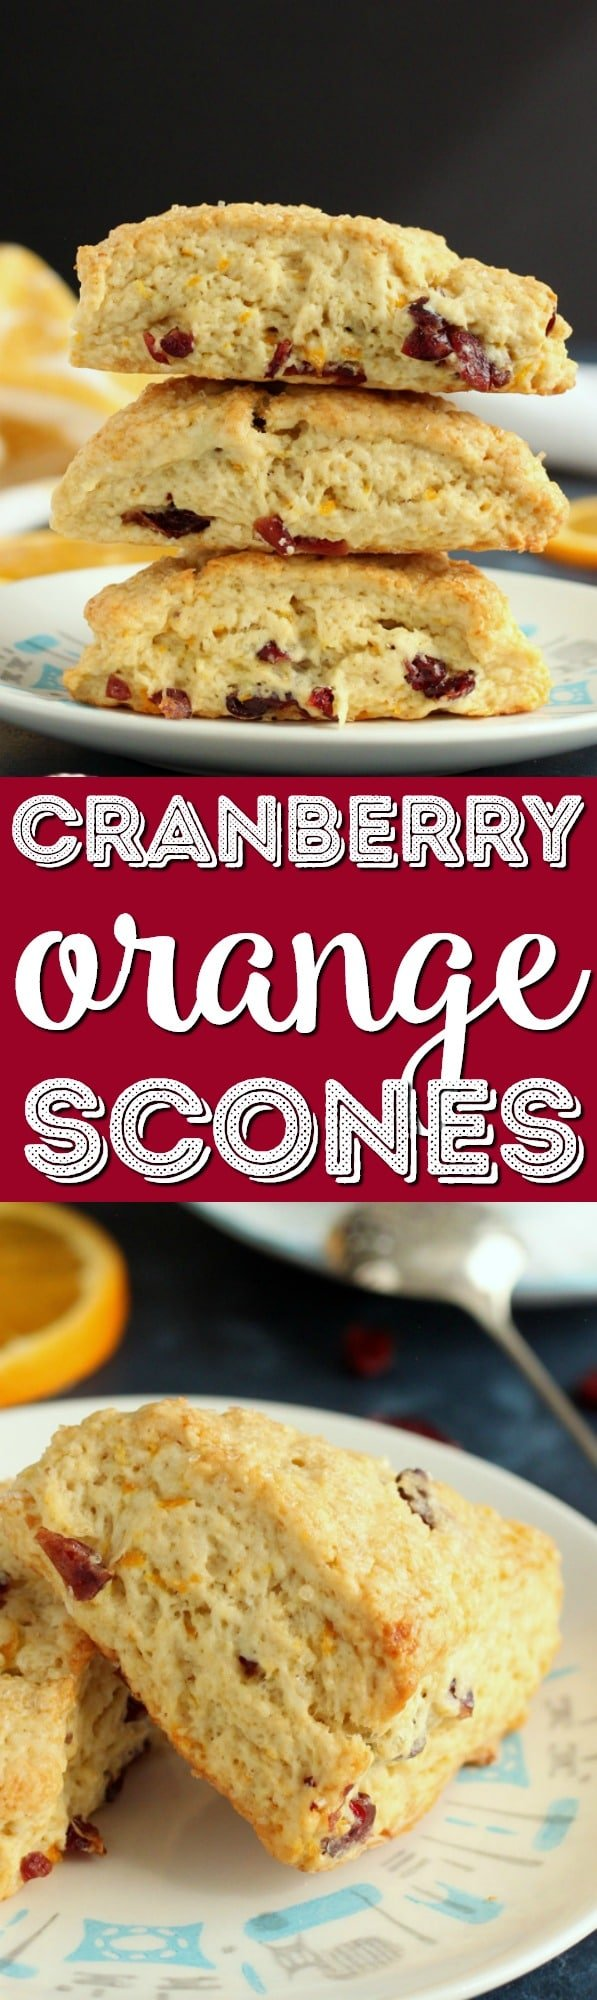 These delicious Cranberry Orange Scones are great for breakfast, as an afternoon snack, or even as a dessert. The smaller portion is perfect for a quick bite on the go without the guilt. via @sugarandsoulco